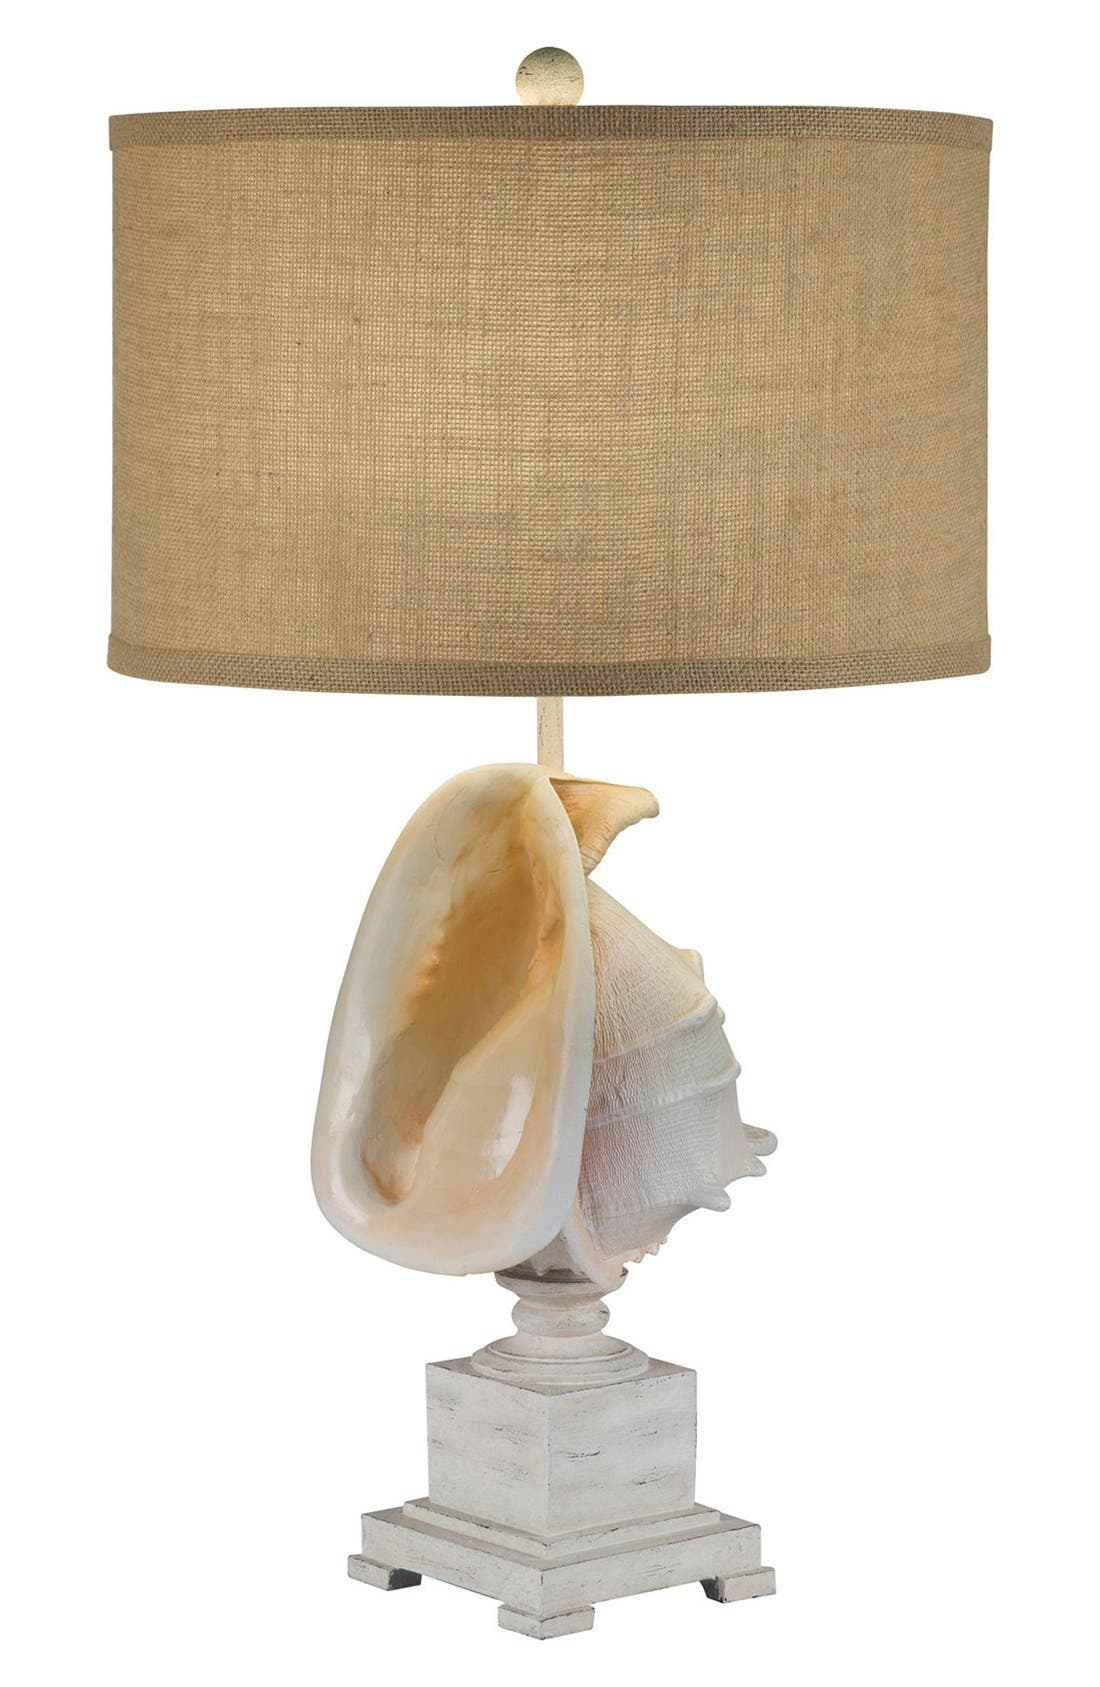 JAlexander Whitewash Shell Table Lamp,                             Main thumbnail 1, color,                             100